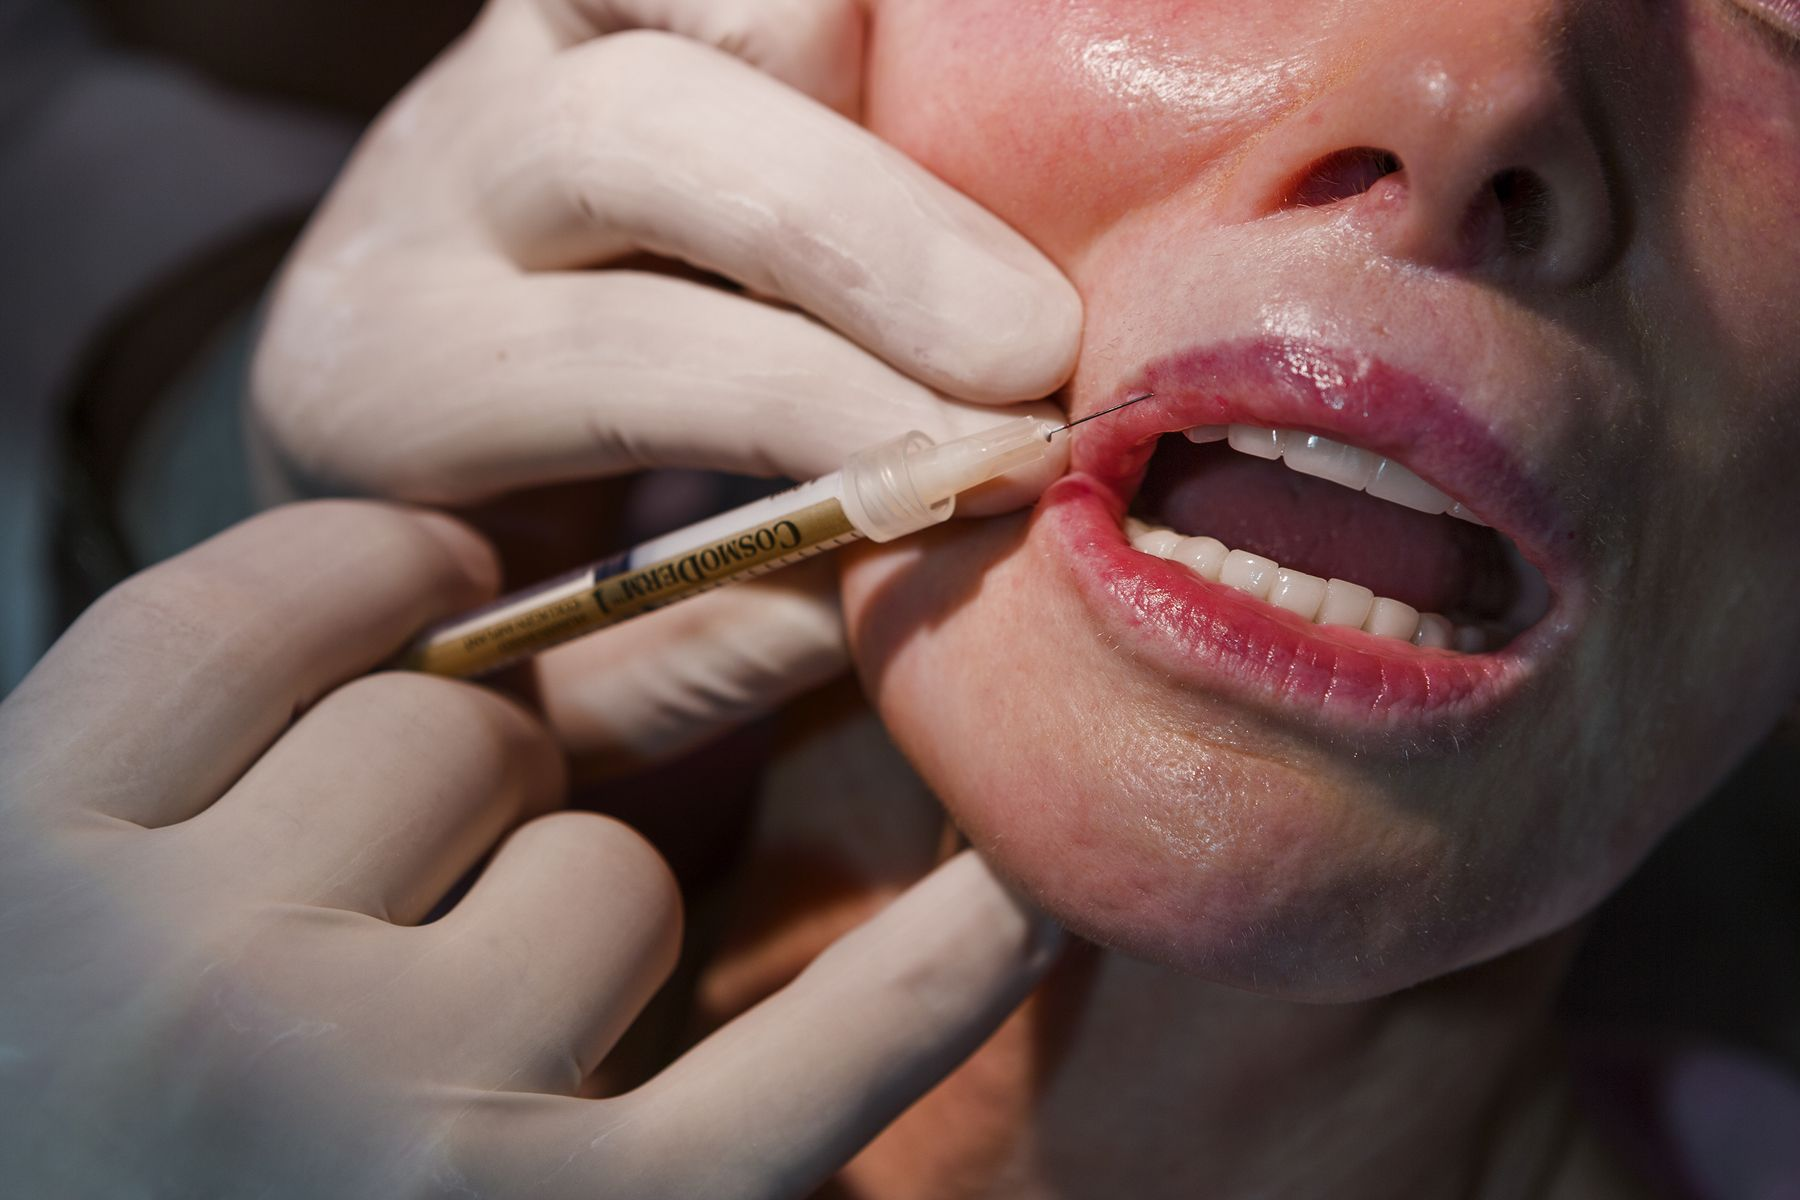 """Jackie Goldberg, 72, also known as """"The Pink Lady"""", gets collagen injections as part of her preparation for the Ms. Senior California beauty pageant, Beverly Hills, California, 2006, Combined Edition of 25"""